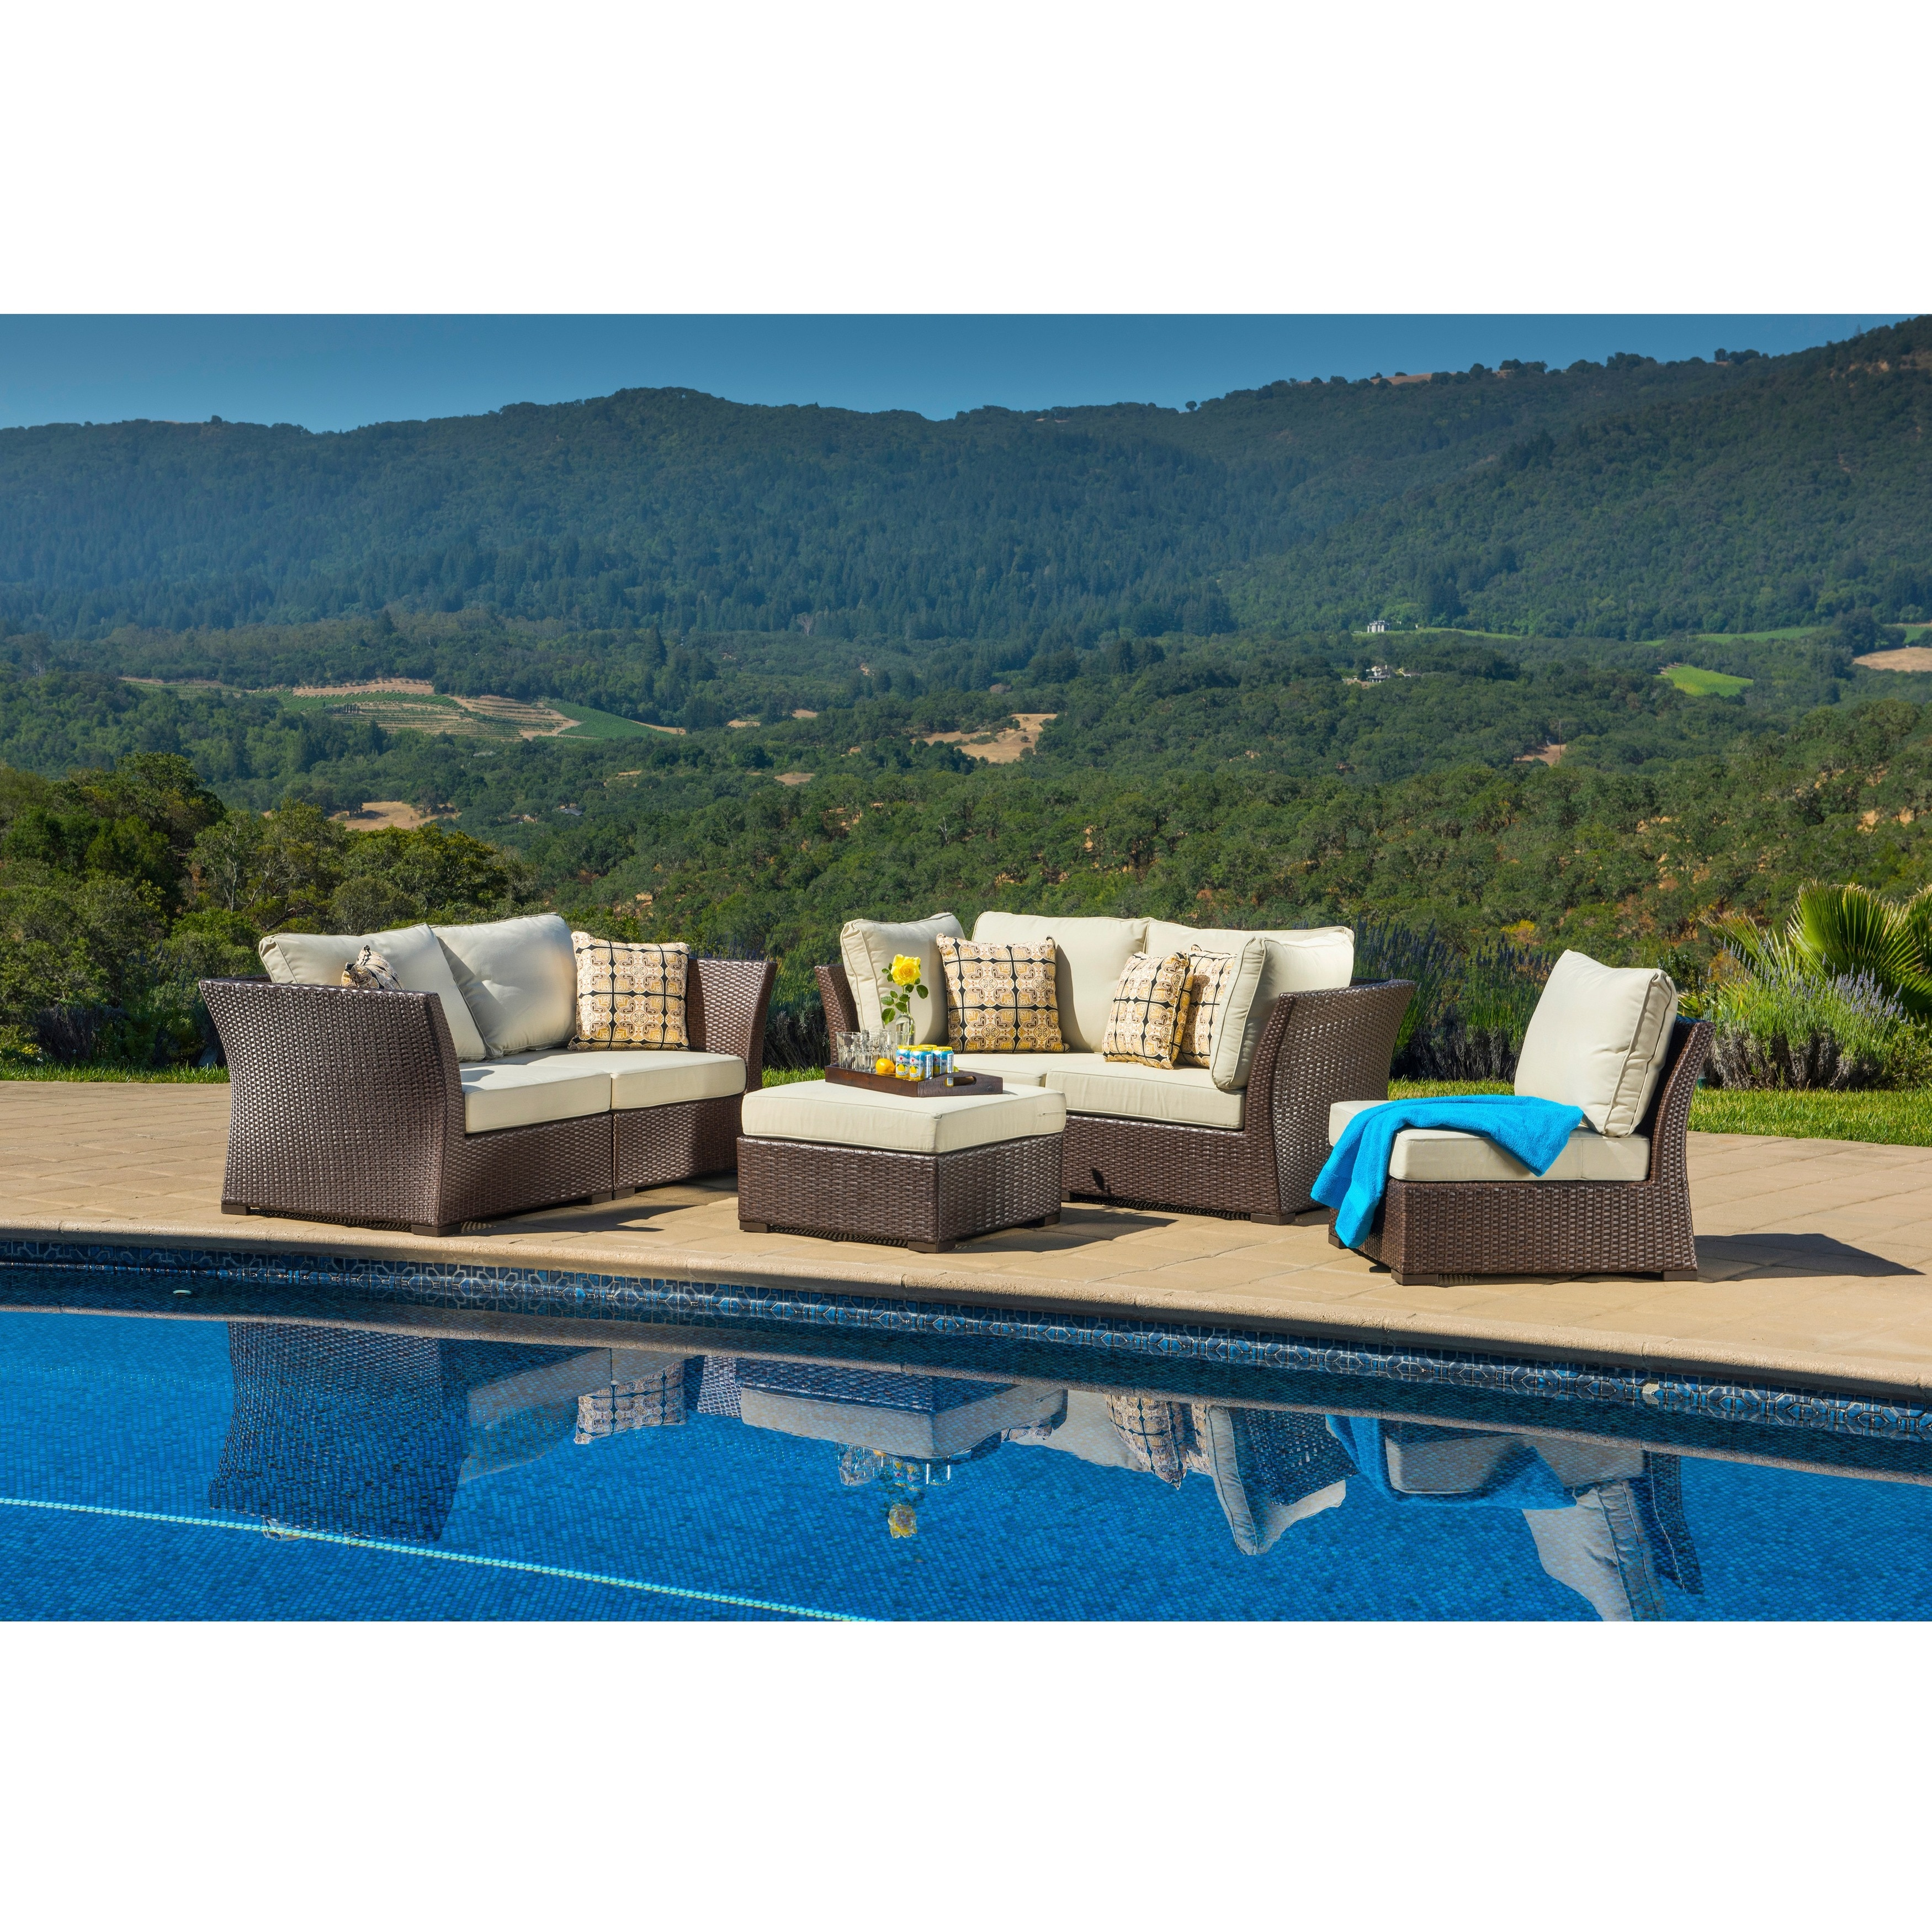 Corvus  Oreanne Outdoor 6-piece Brown Wicker Sofa Set